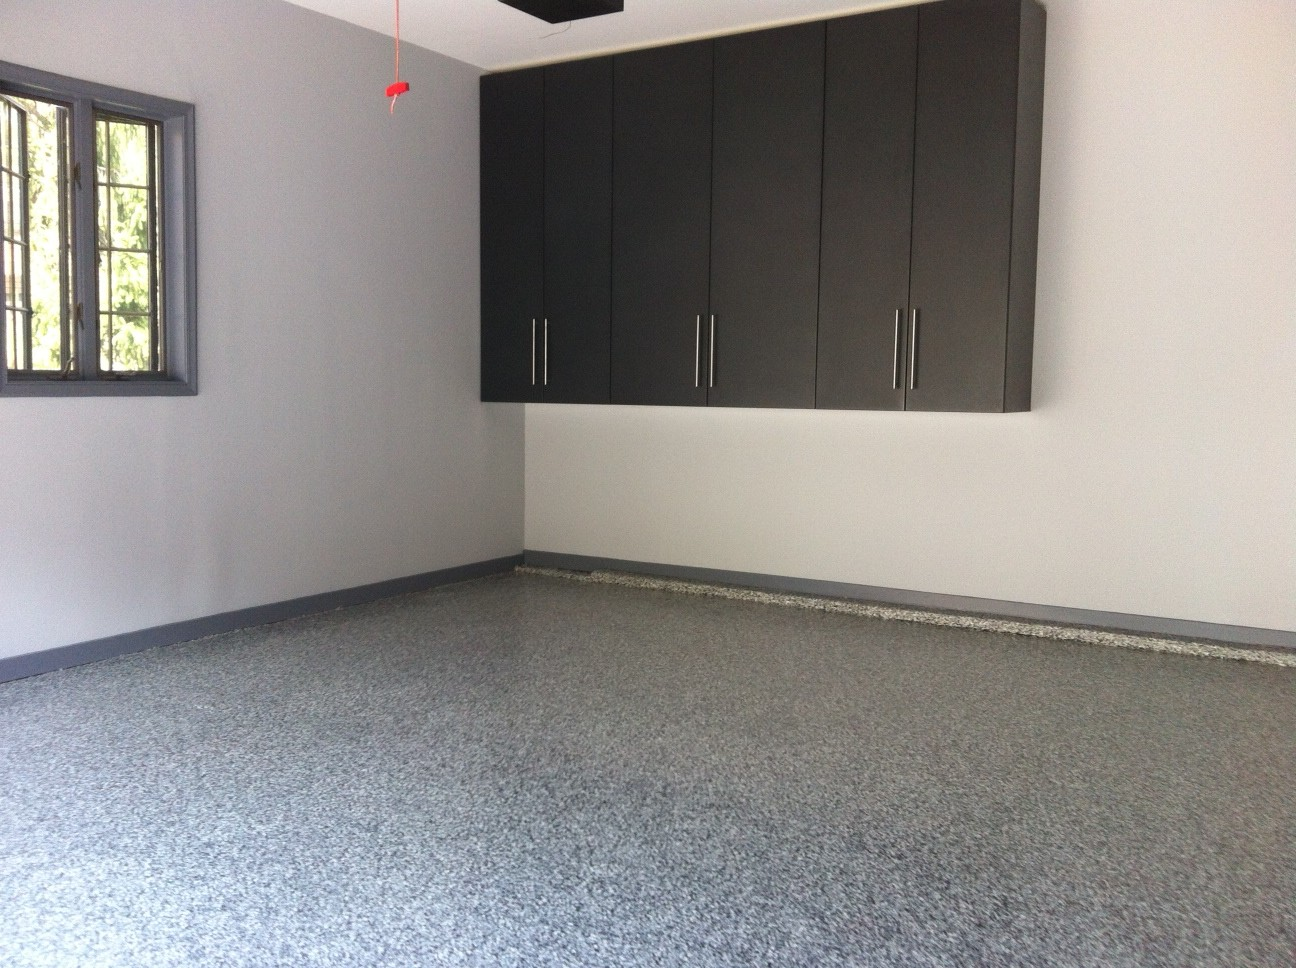 Graphite Powder Coated Cabinets & Floor